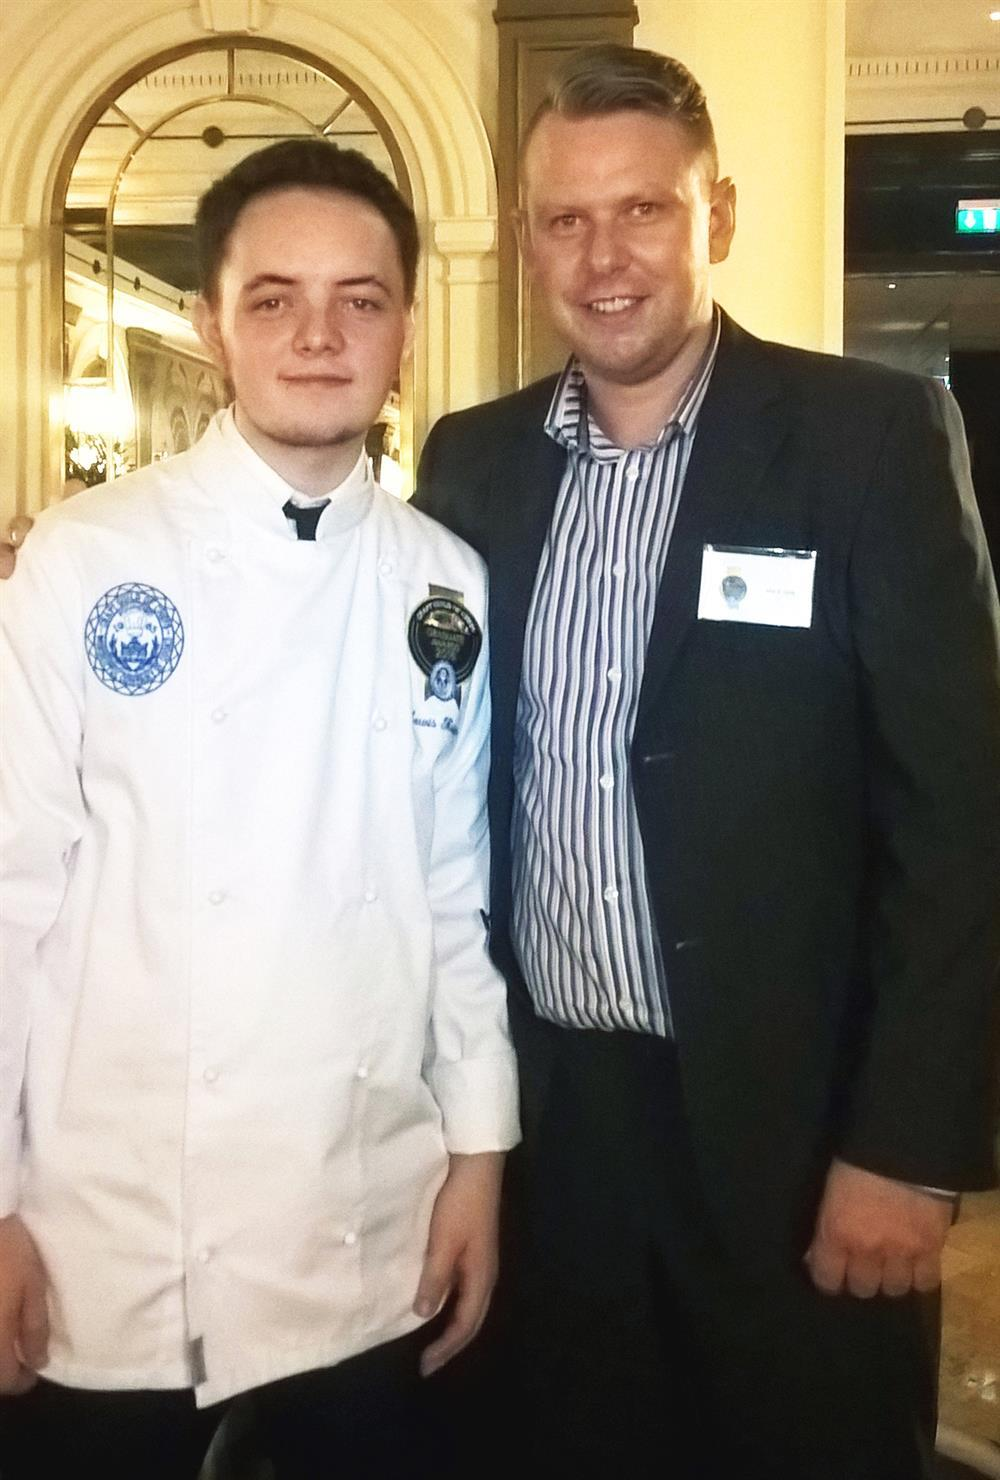 Lewis Kuciers with his mentor Mark Jones at The Park Lane Hotel in London